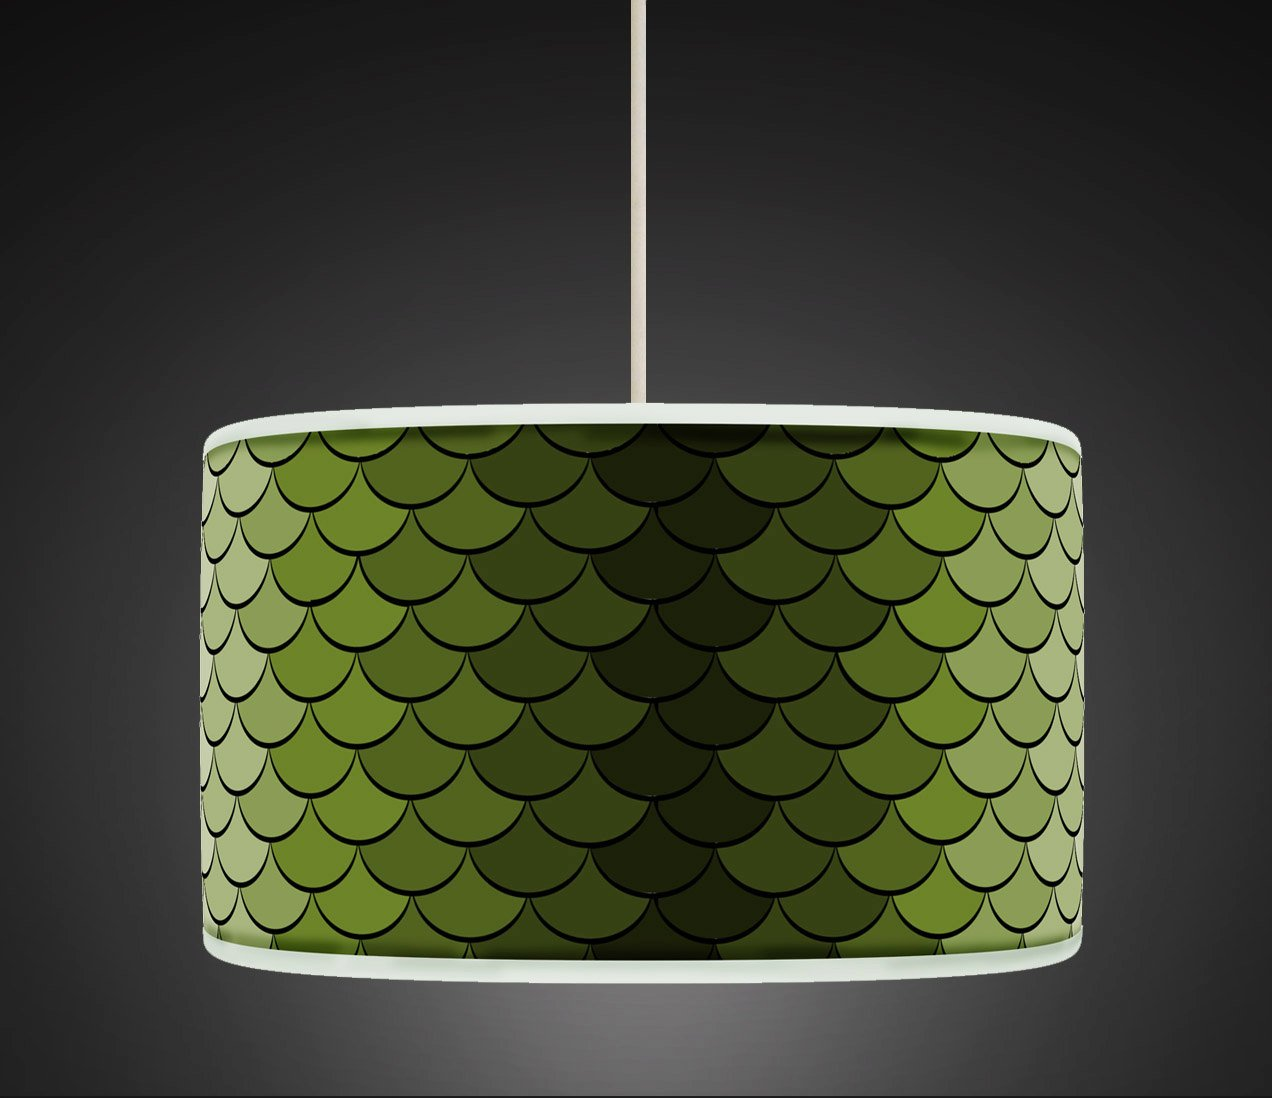 30cm Green Retro Geometric Handmade Giclee Style Printed Fabric Lamp Drum Lampshade Floor Or Ceiling Pendant Light Shade 458 Amazoncouk Lighting